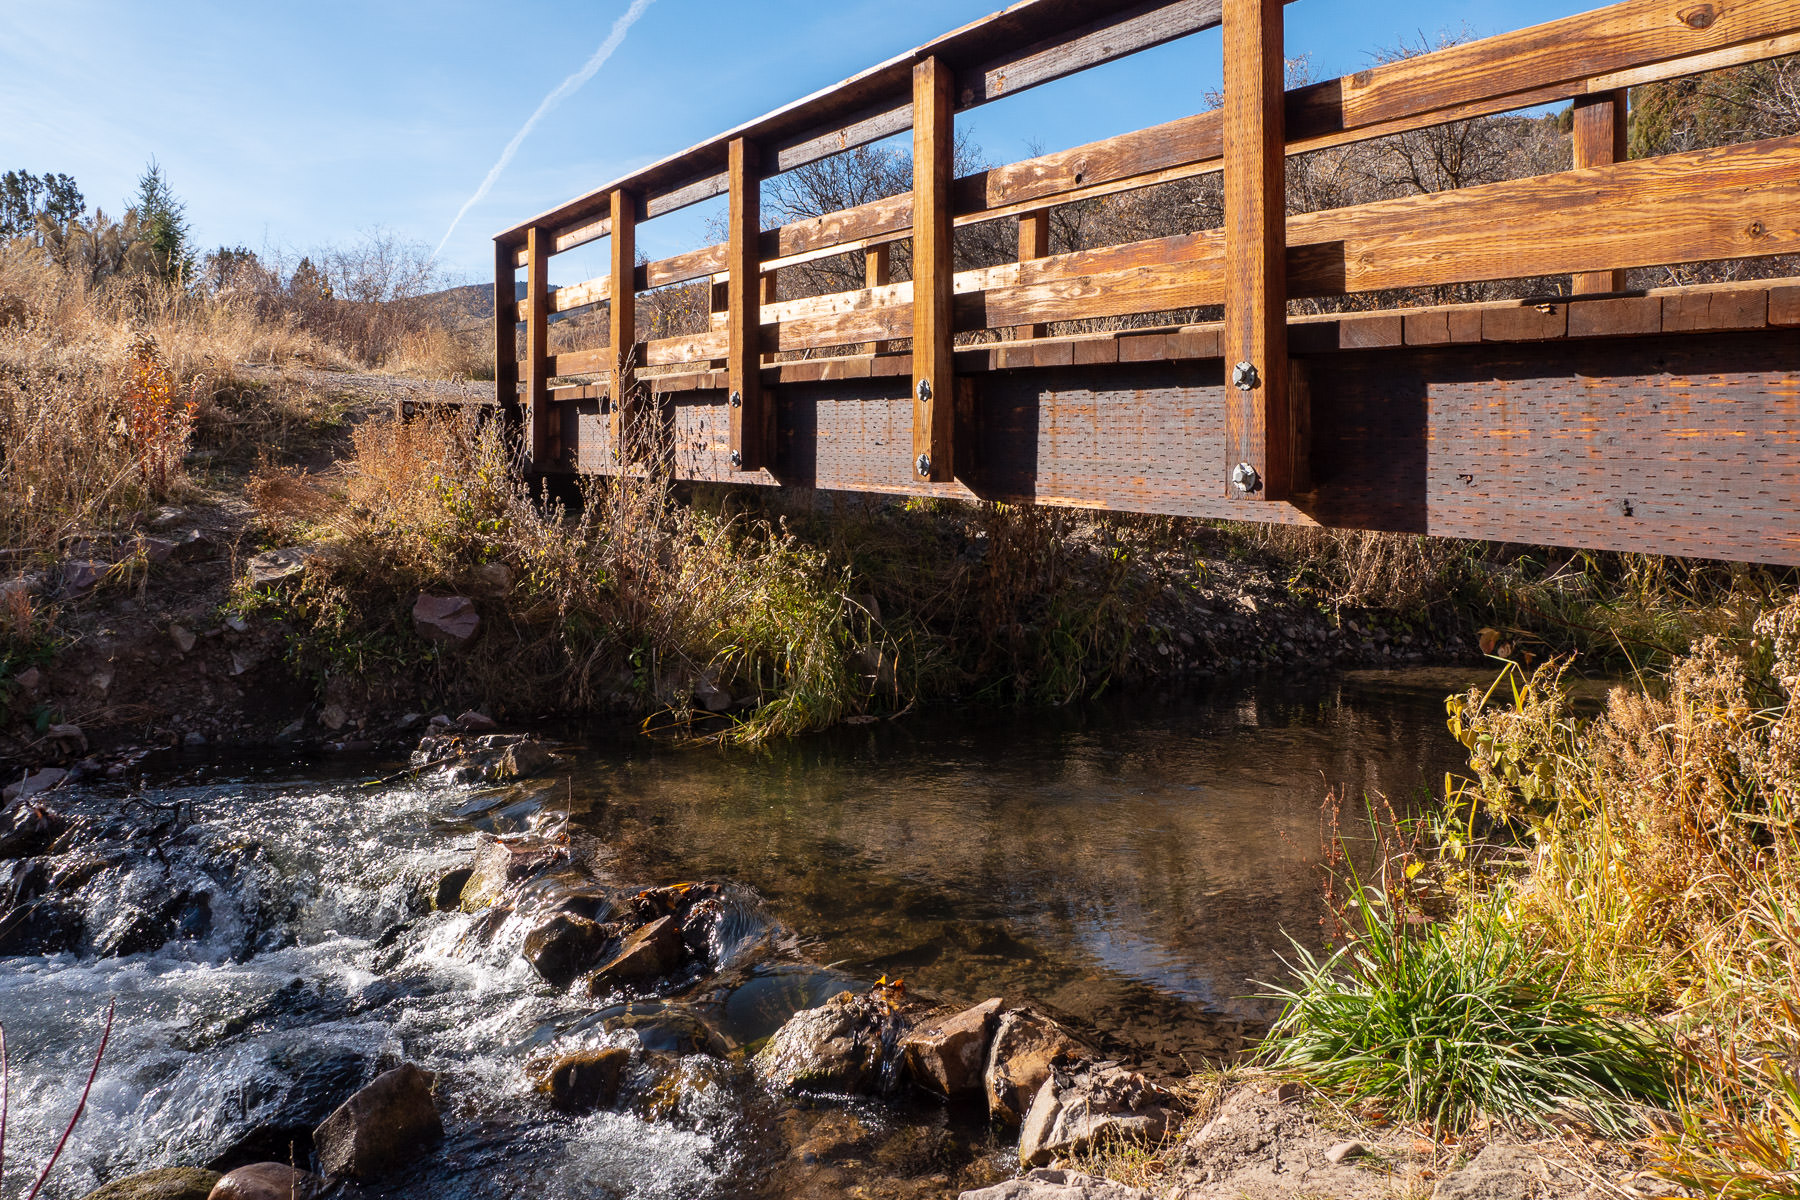 A pedestrian bridge crosses a small stream at Cherry Springs Nature Area near Pocatello, Idaho.